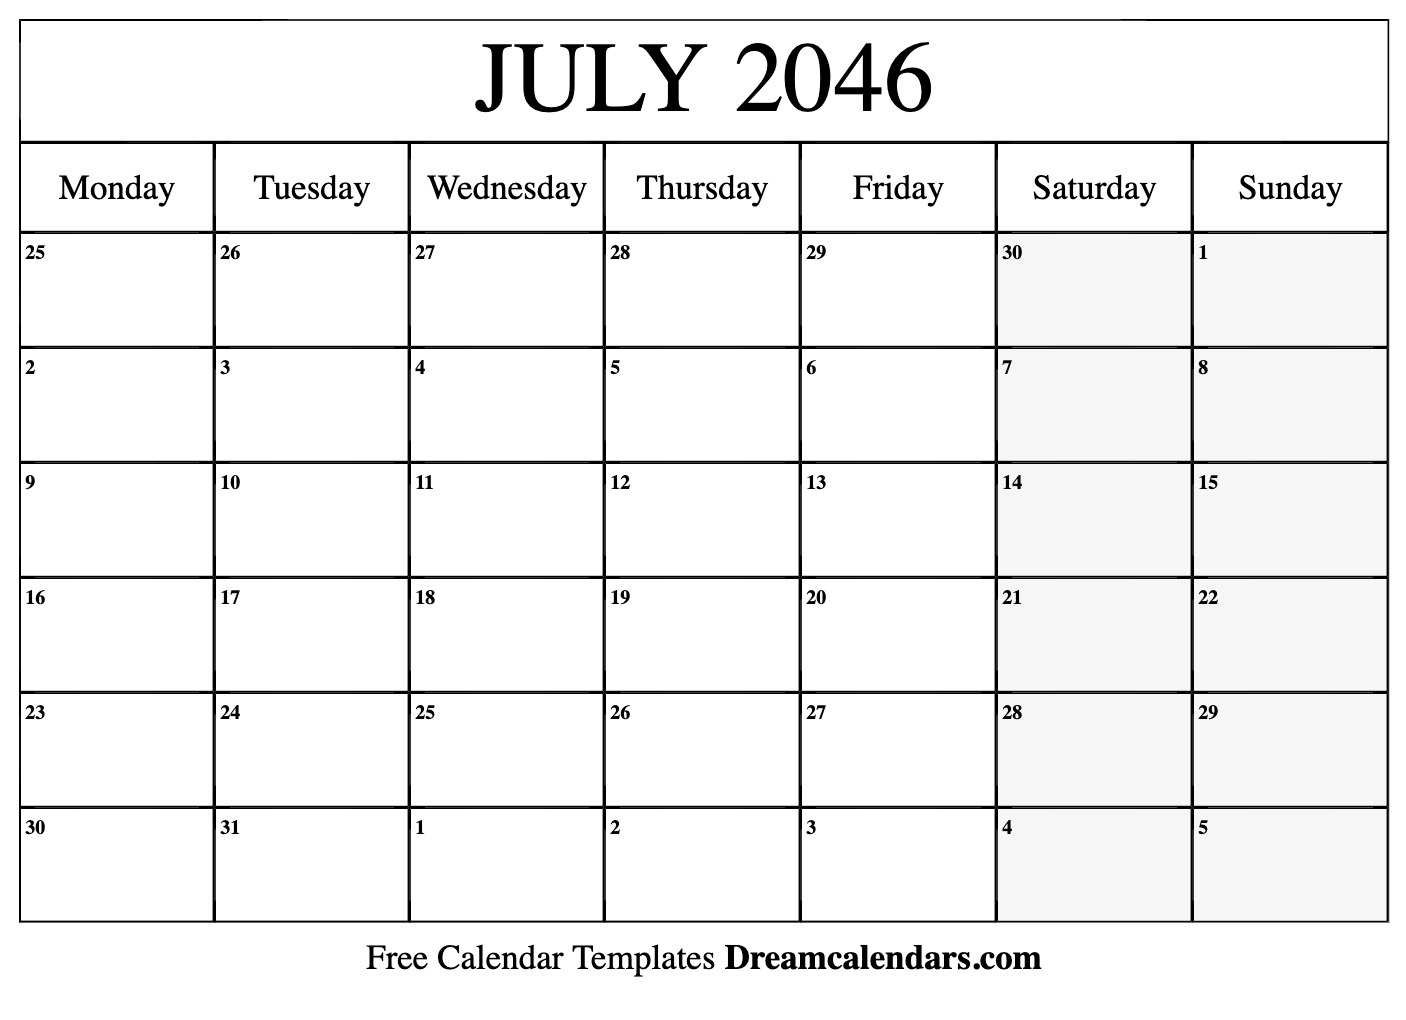 graphic relating to Printable July Calendar named Printable July 2046 Calendar